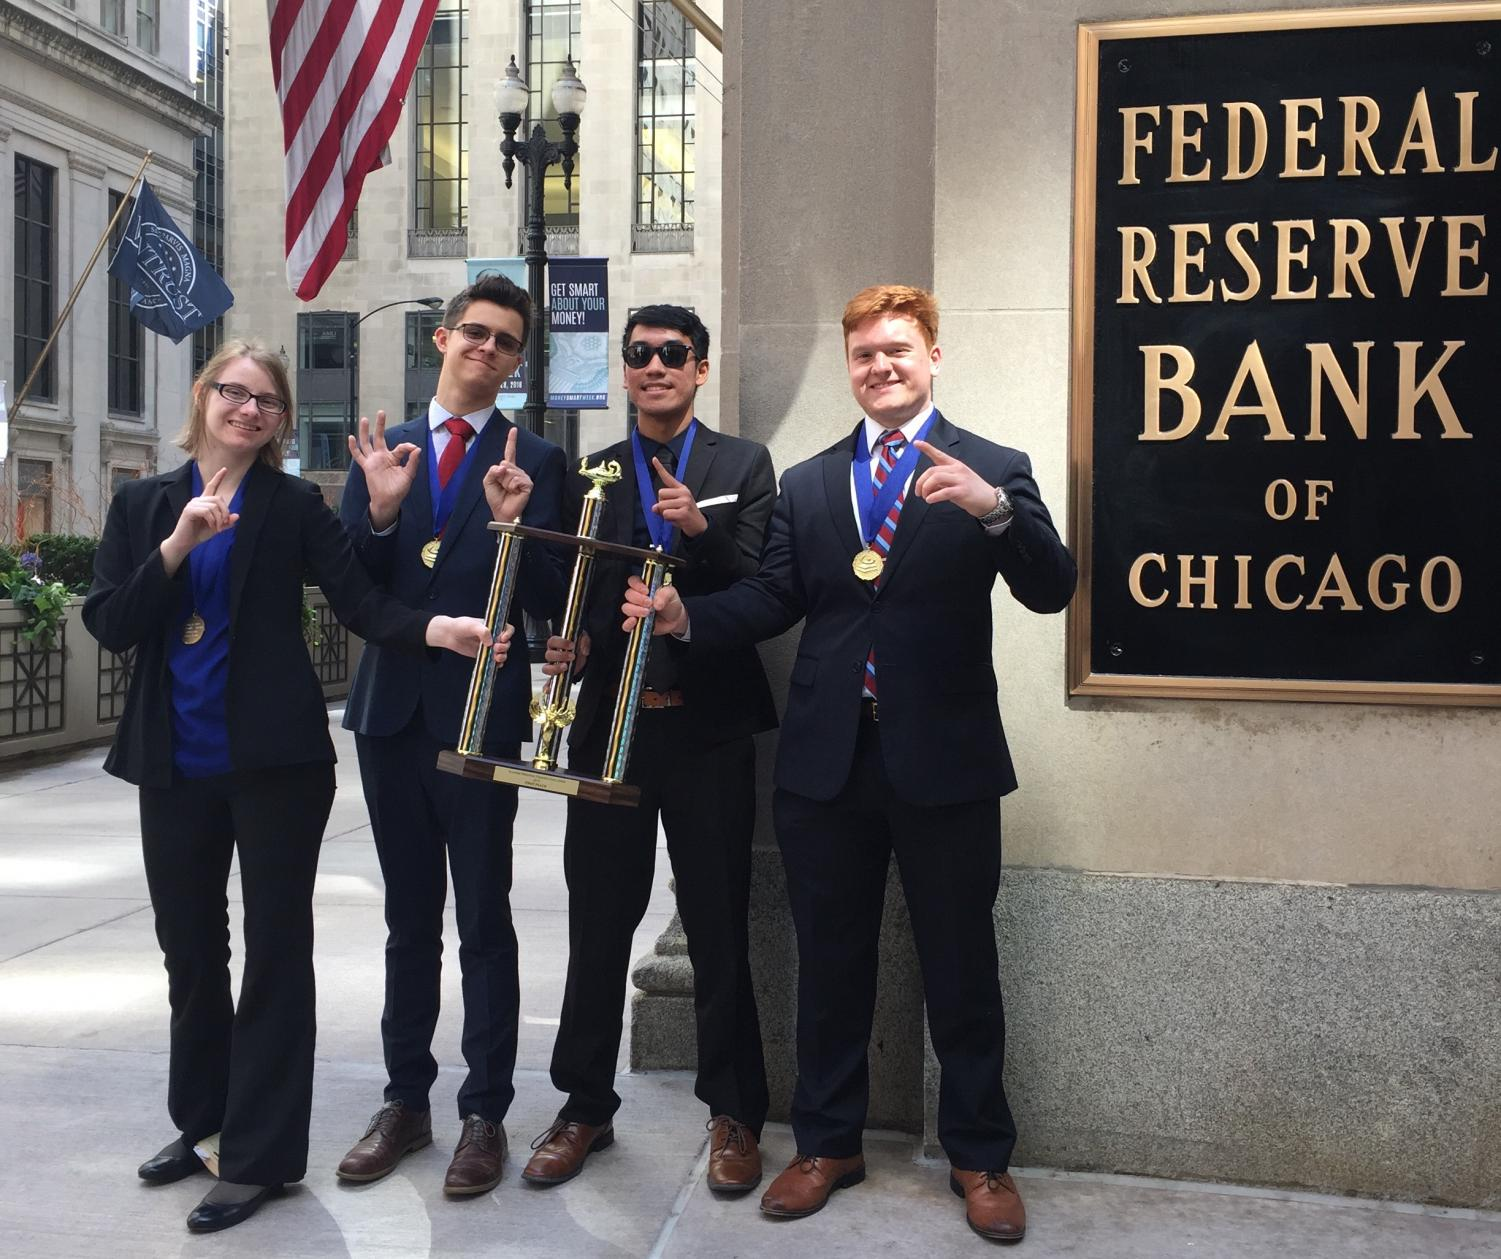 From left to right seniors Emily Pietura, Connor Thompson, Jeremy Belingon, and Michael Sawicki competed for the Personal finance challenge on April 25.